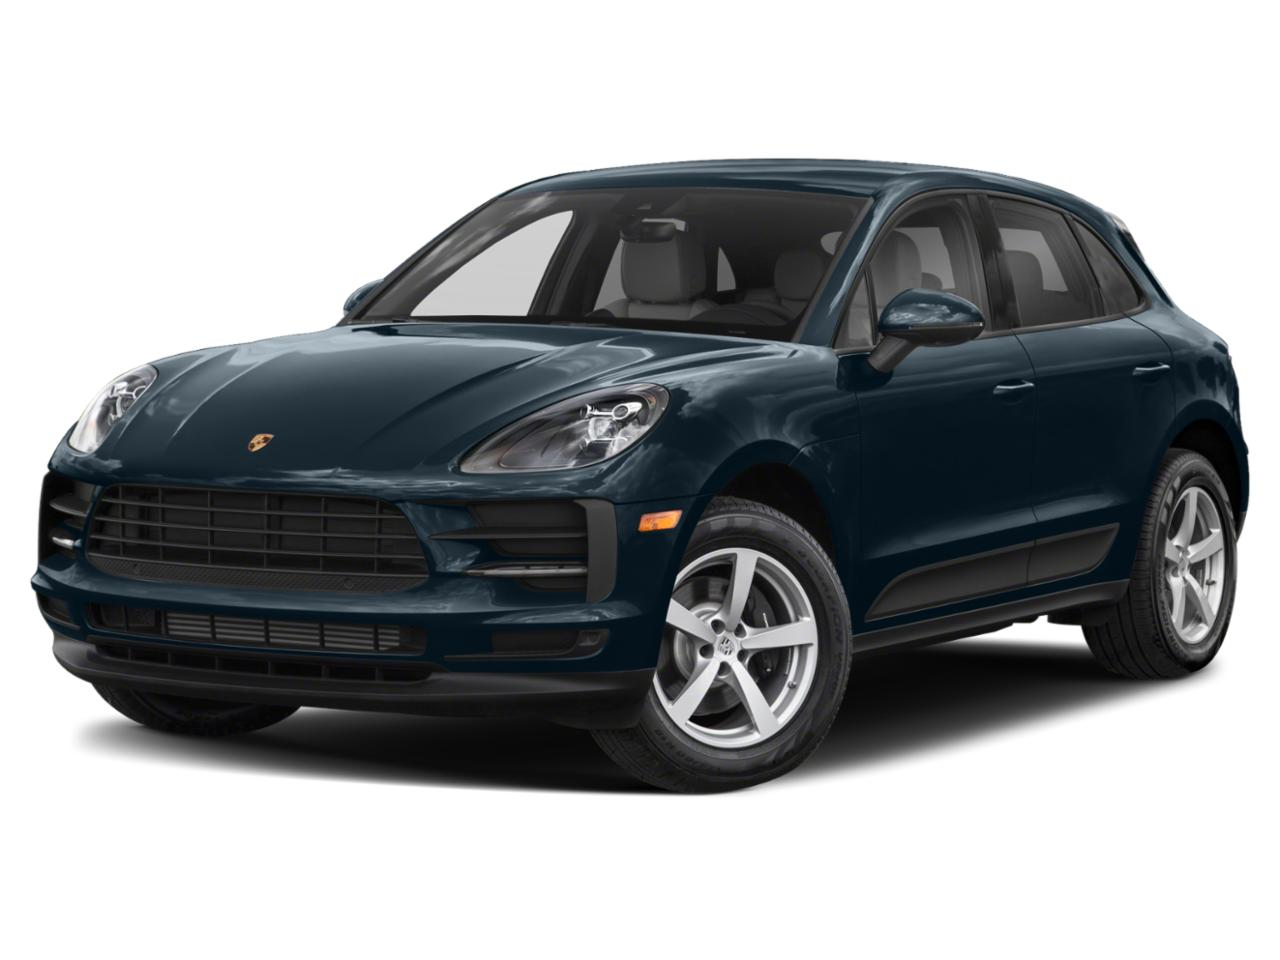 2019 Porsche Macan Vehicle Photo in Nashua, NH 03060